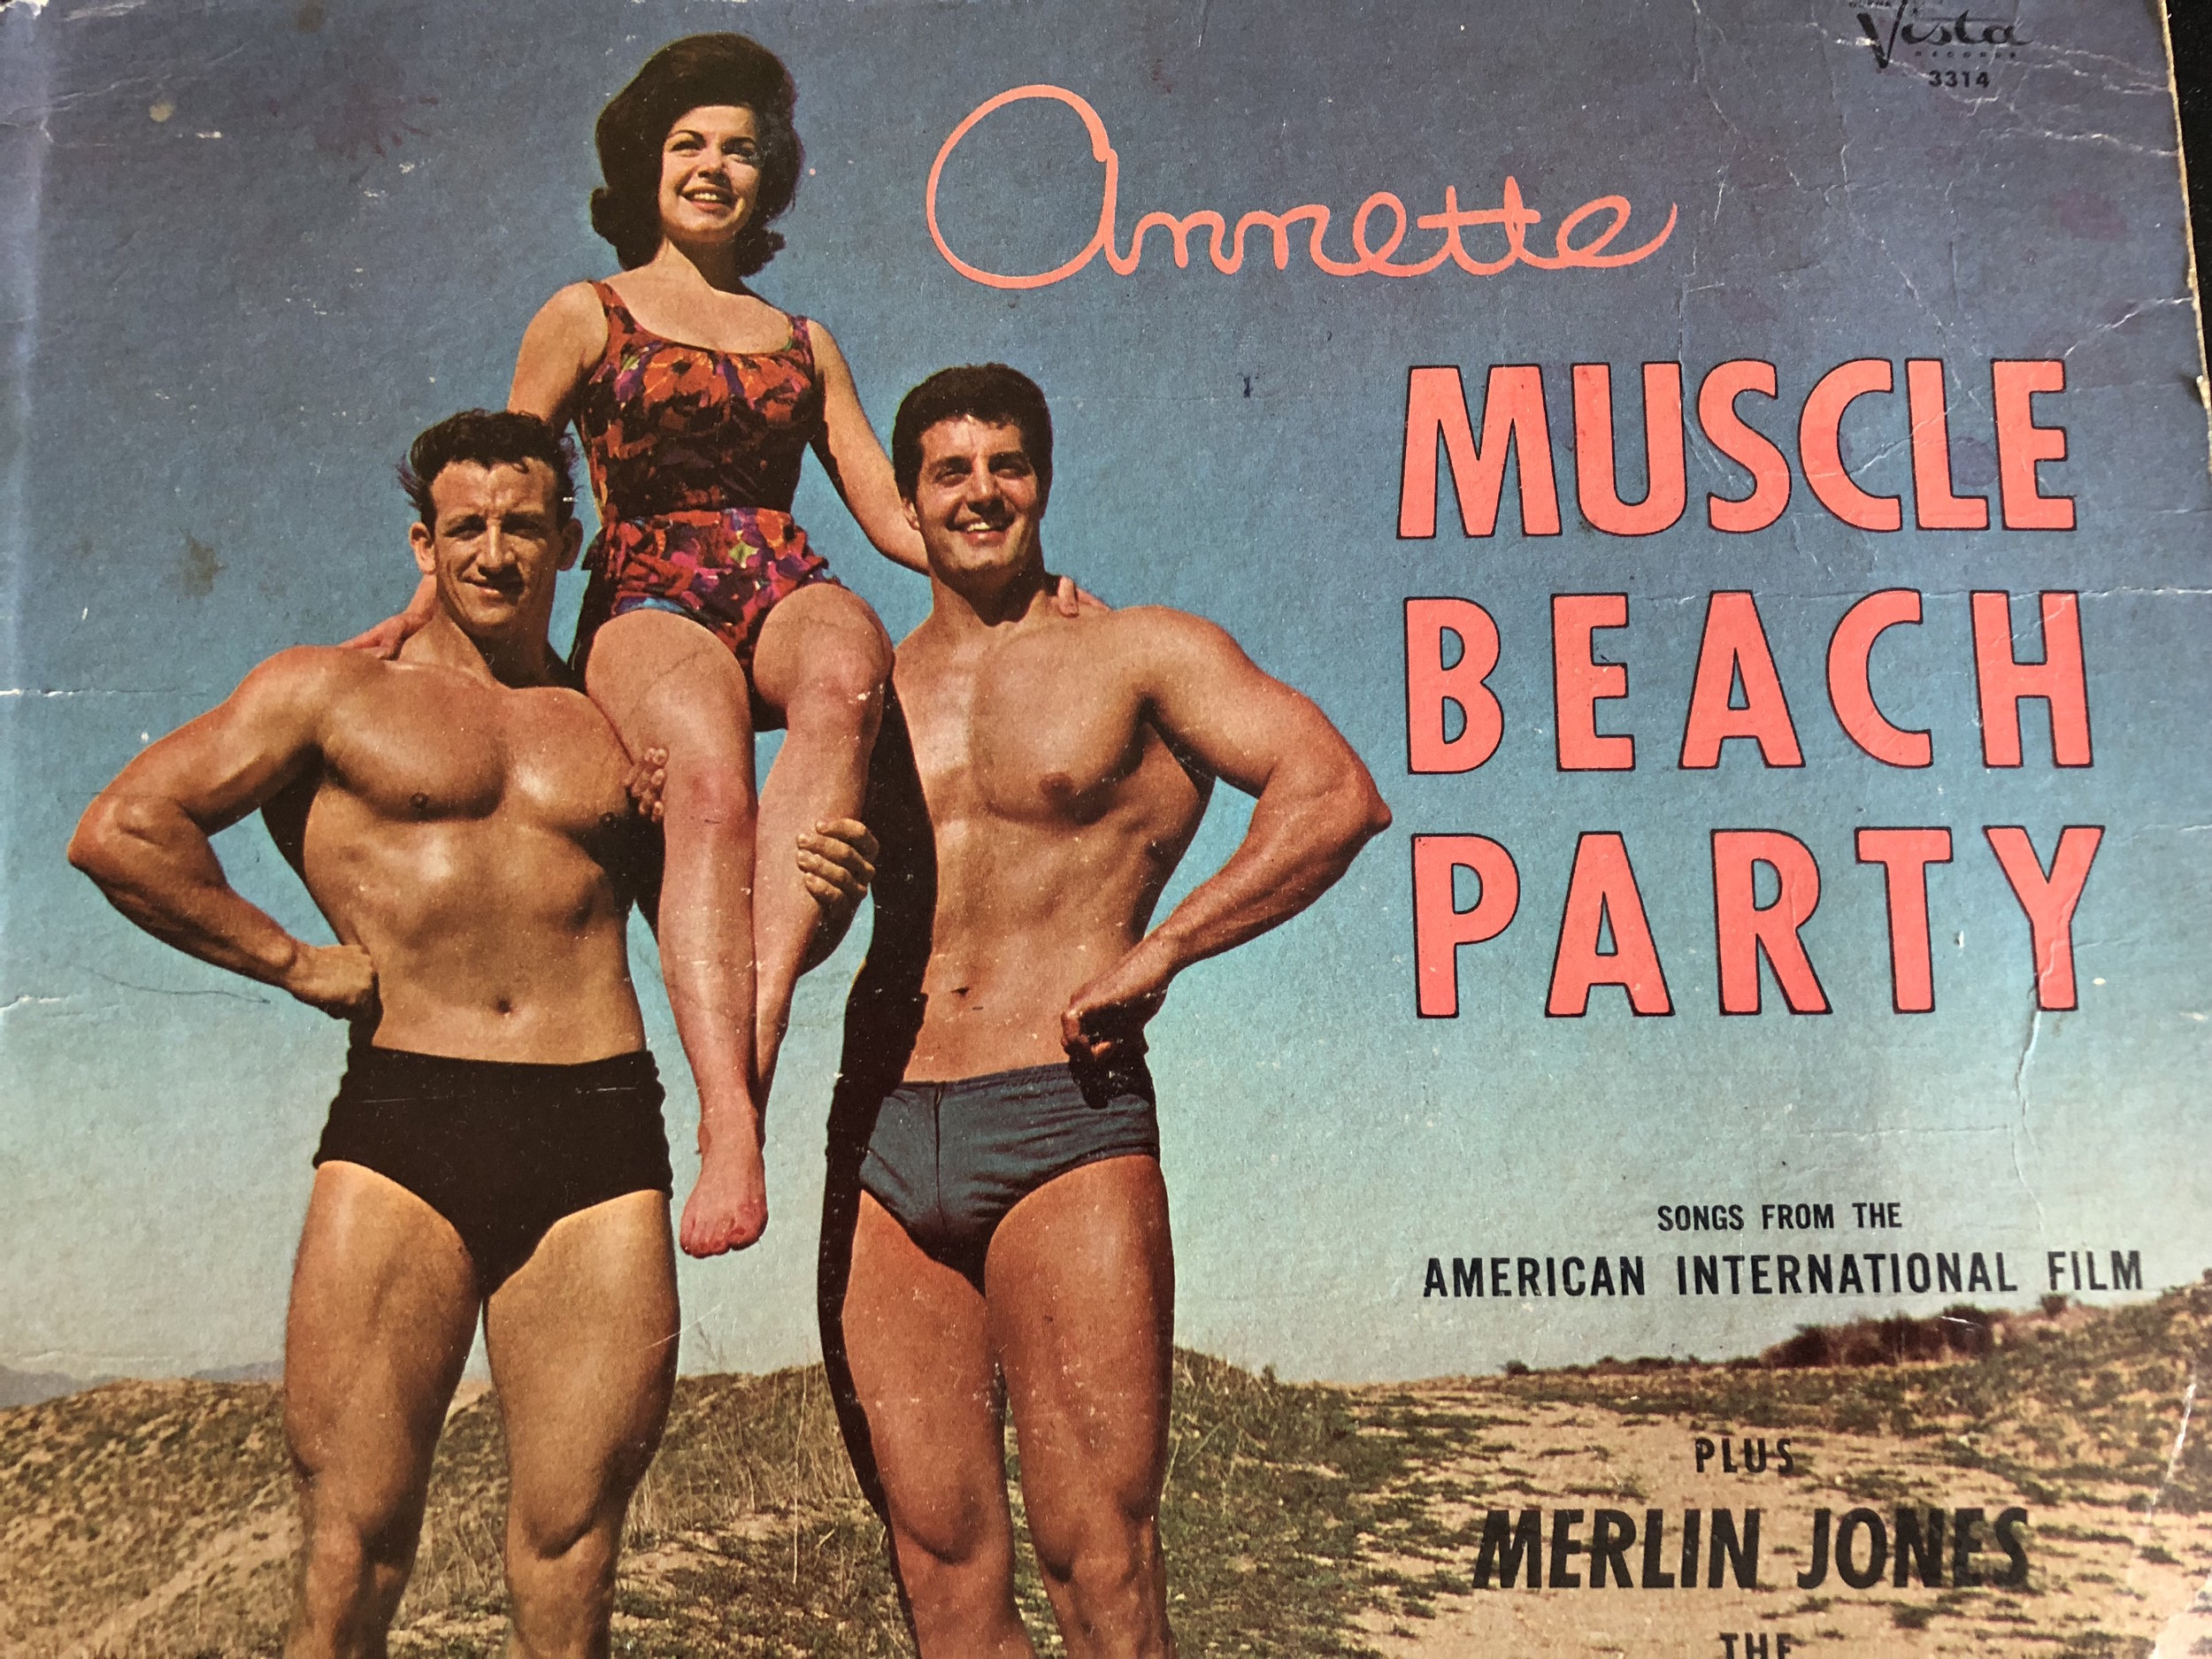 MUSCLE BEACH PARTY ALBUM COVER (1964)